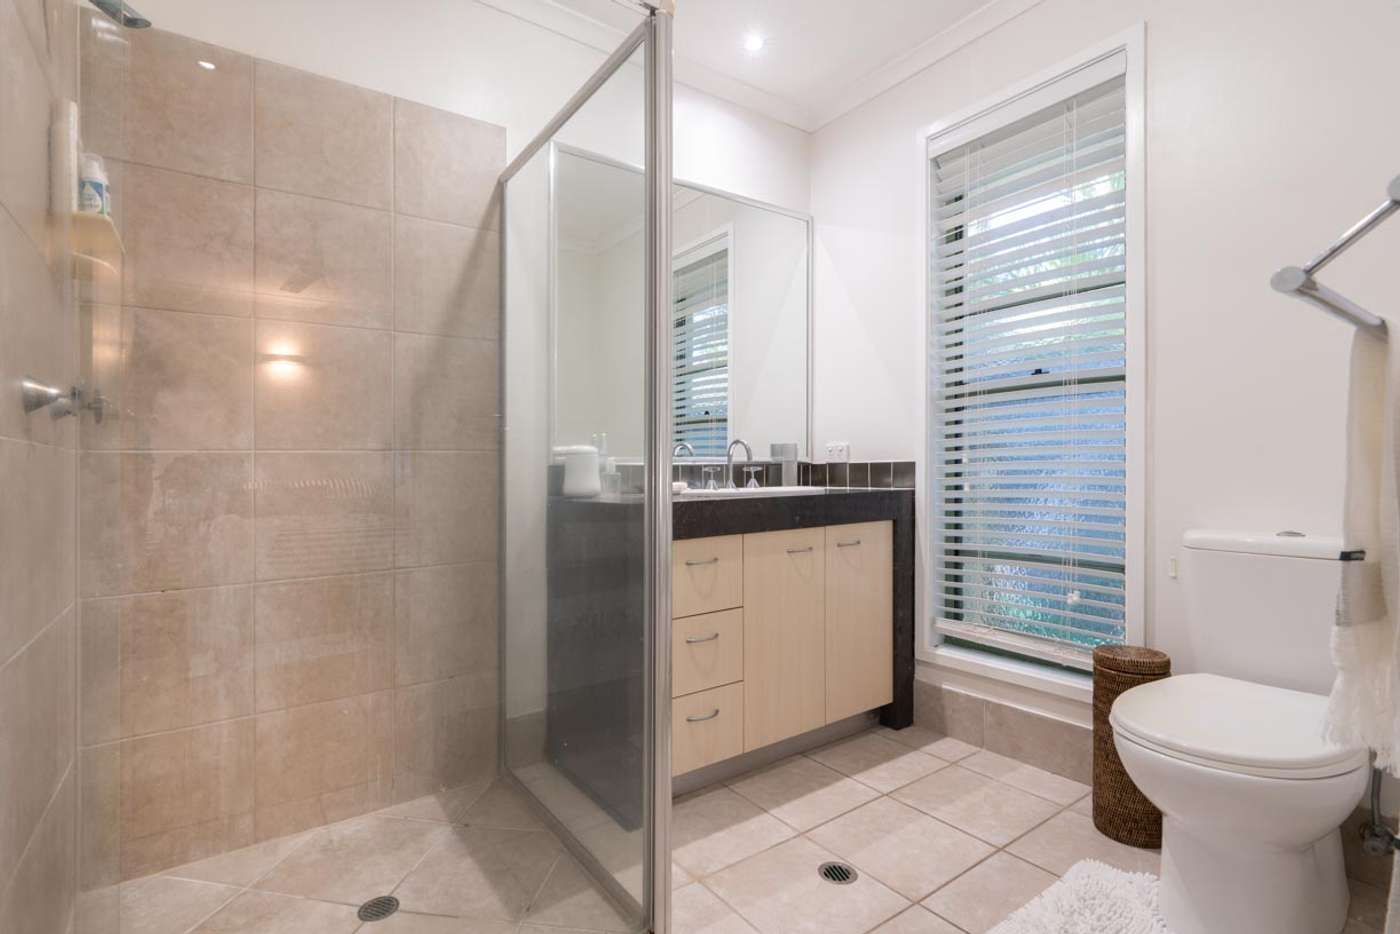 Sixth view of Homely house listing, 4 Yarran Road, Peregian Springs QLD 4573